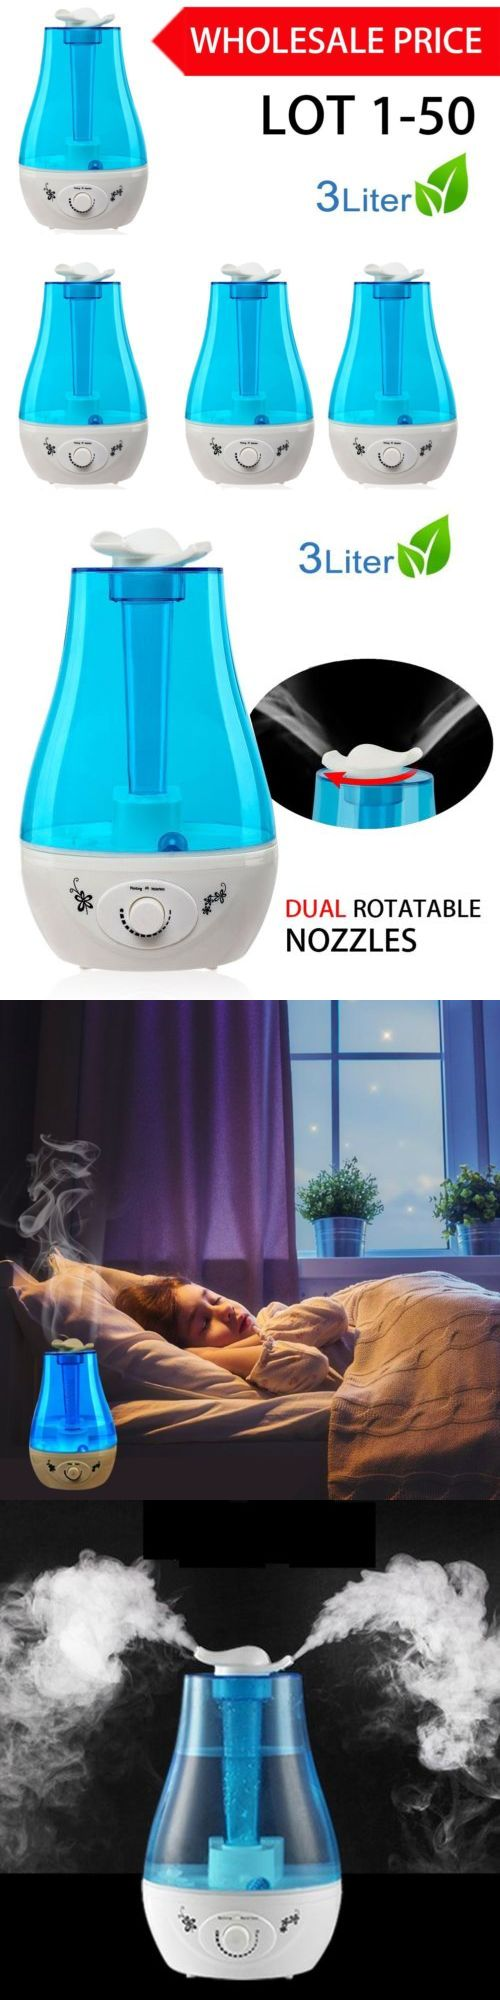 Humidifiers 71240: 3L Ultrasonic Humidifier Cool Air Diffuser Purifier Home Office Room Lot 1-50 Mx -> BUY IT NOW ONLY: $865.55 on eBay!